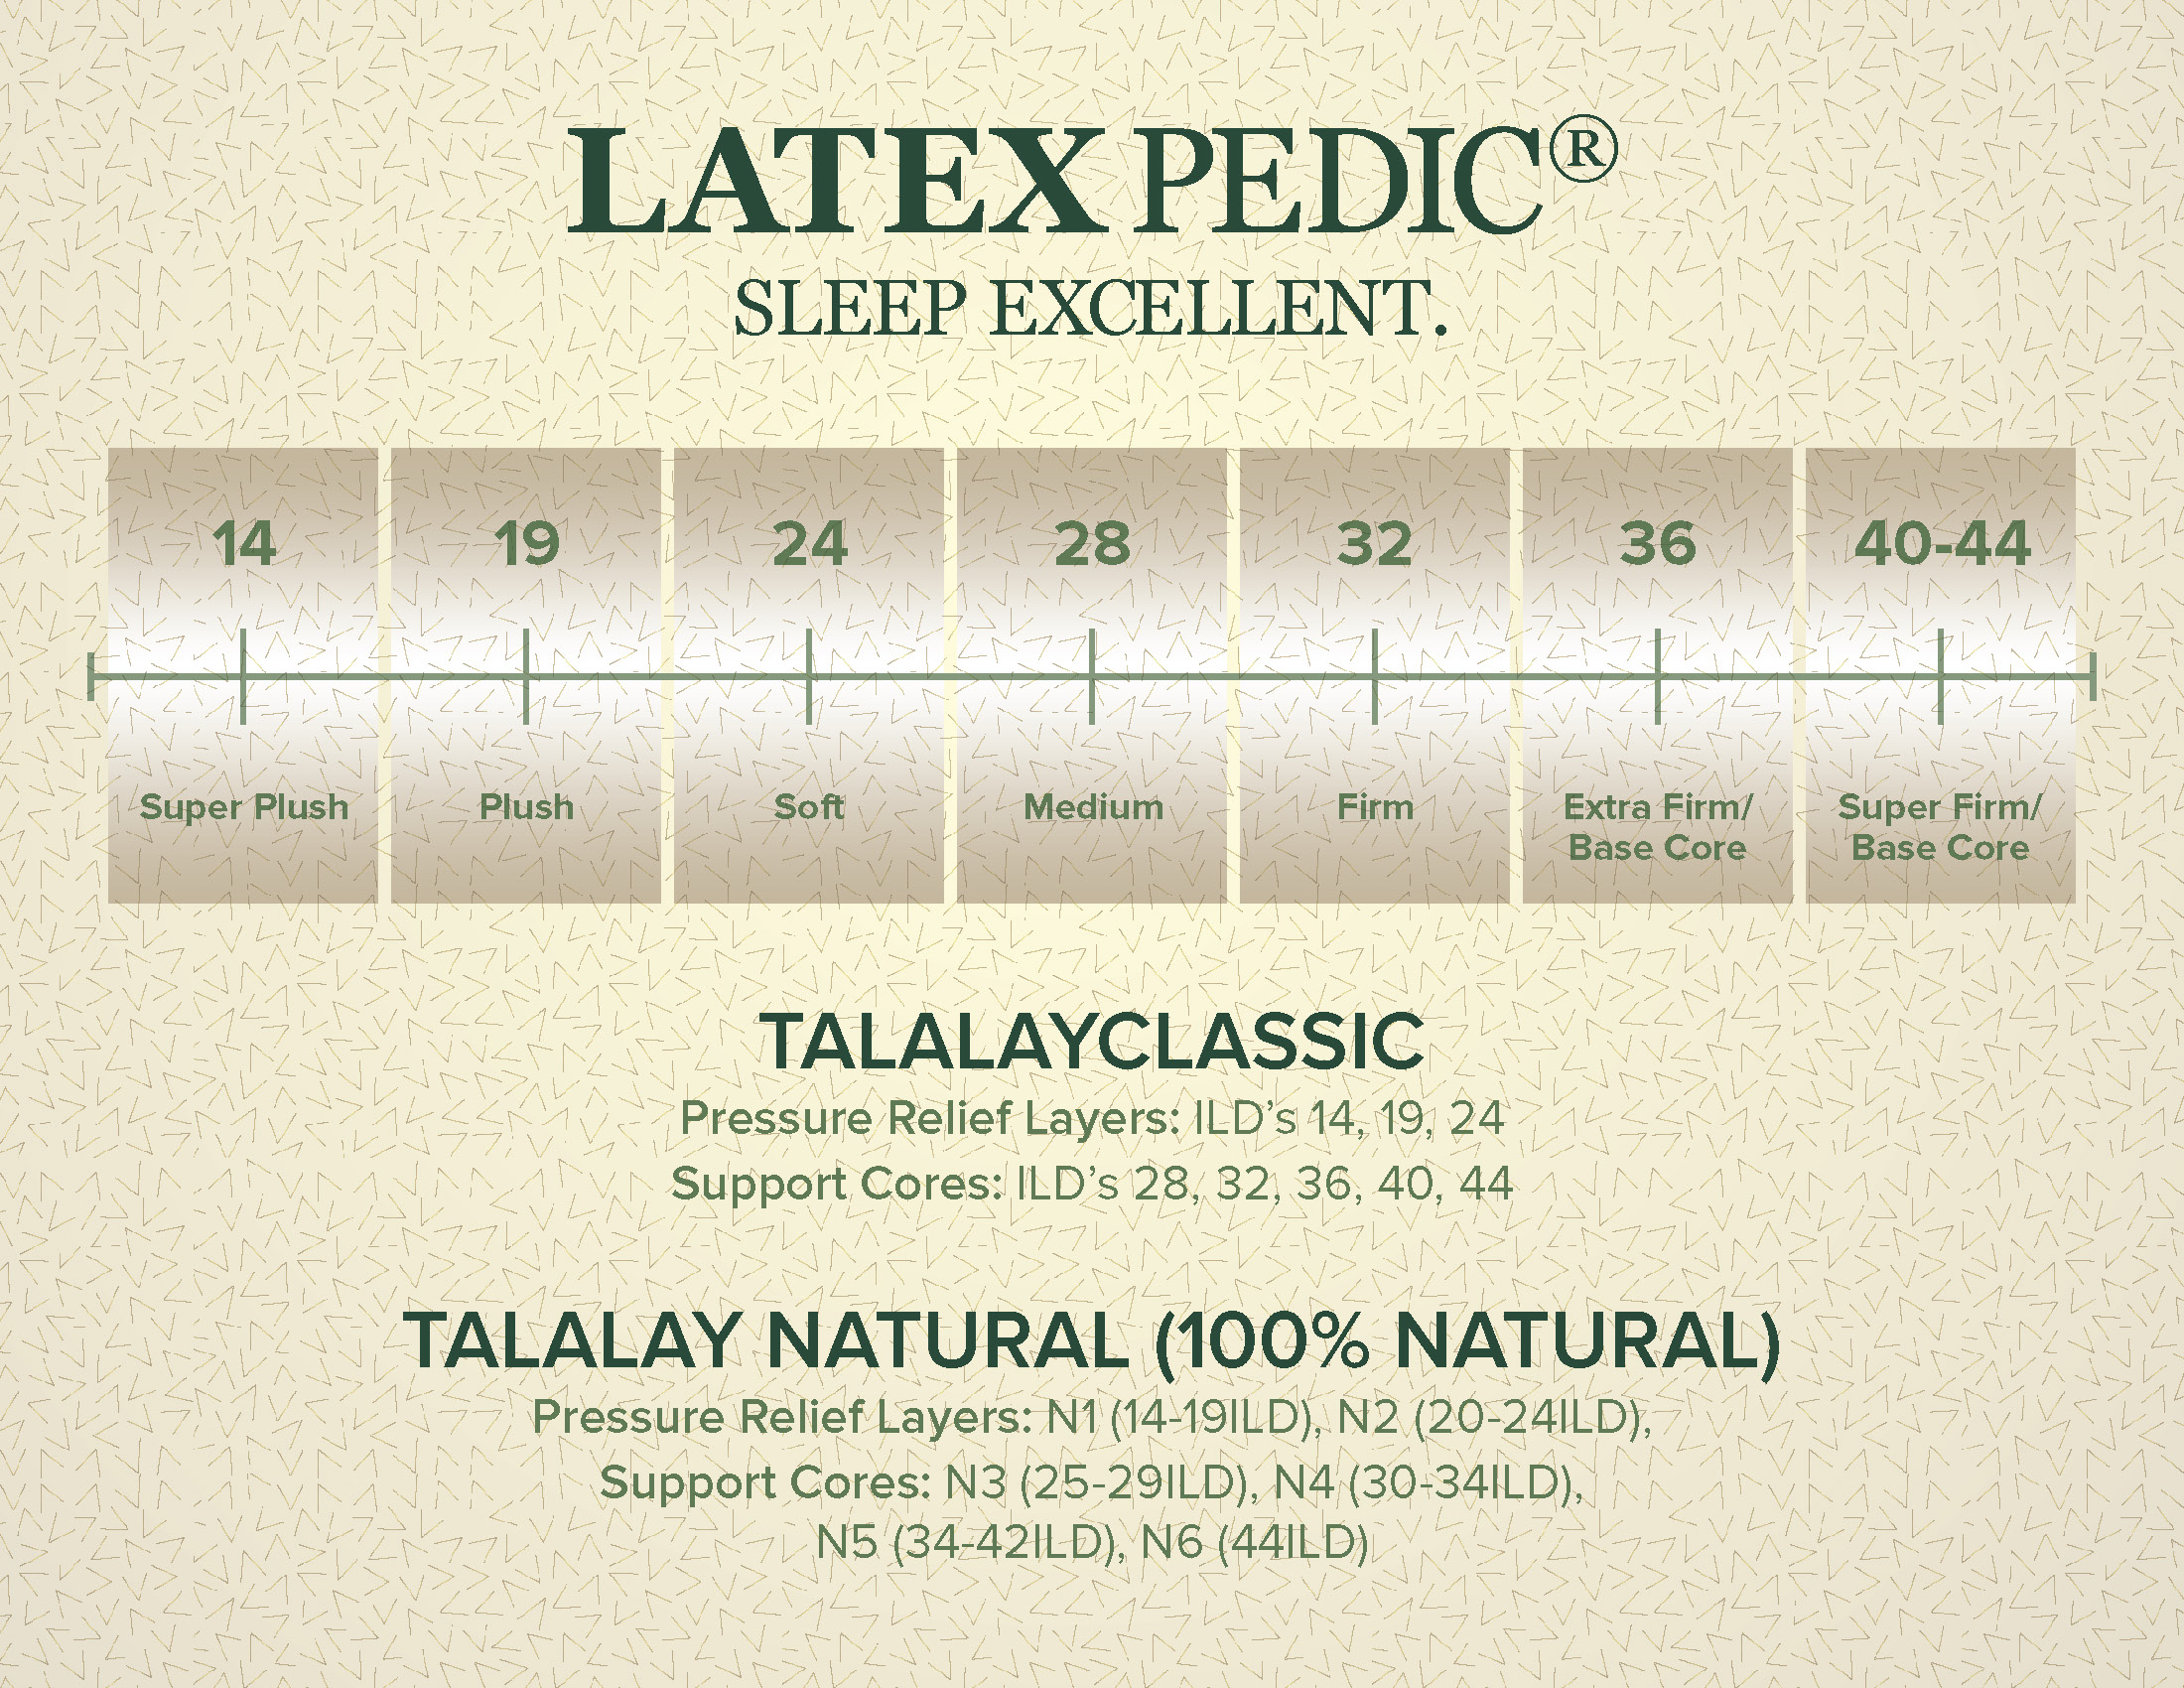 Select the mattress resistance level for your personal use, and take a  health break: Soft, Regular Firm, Extra Firm and Ultra Firm.